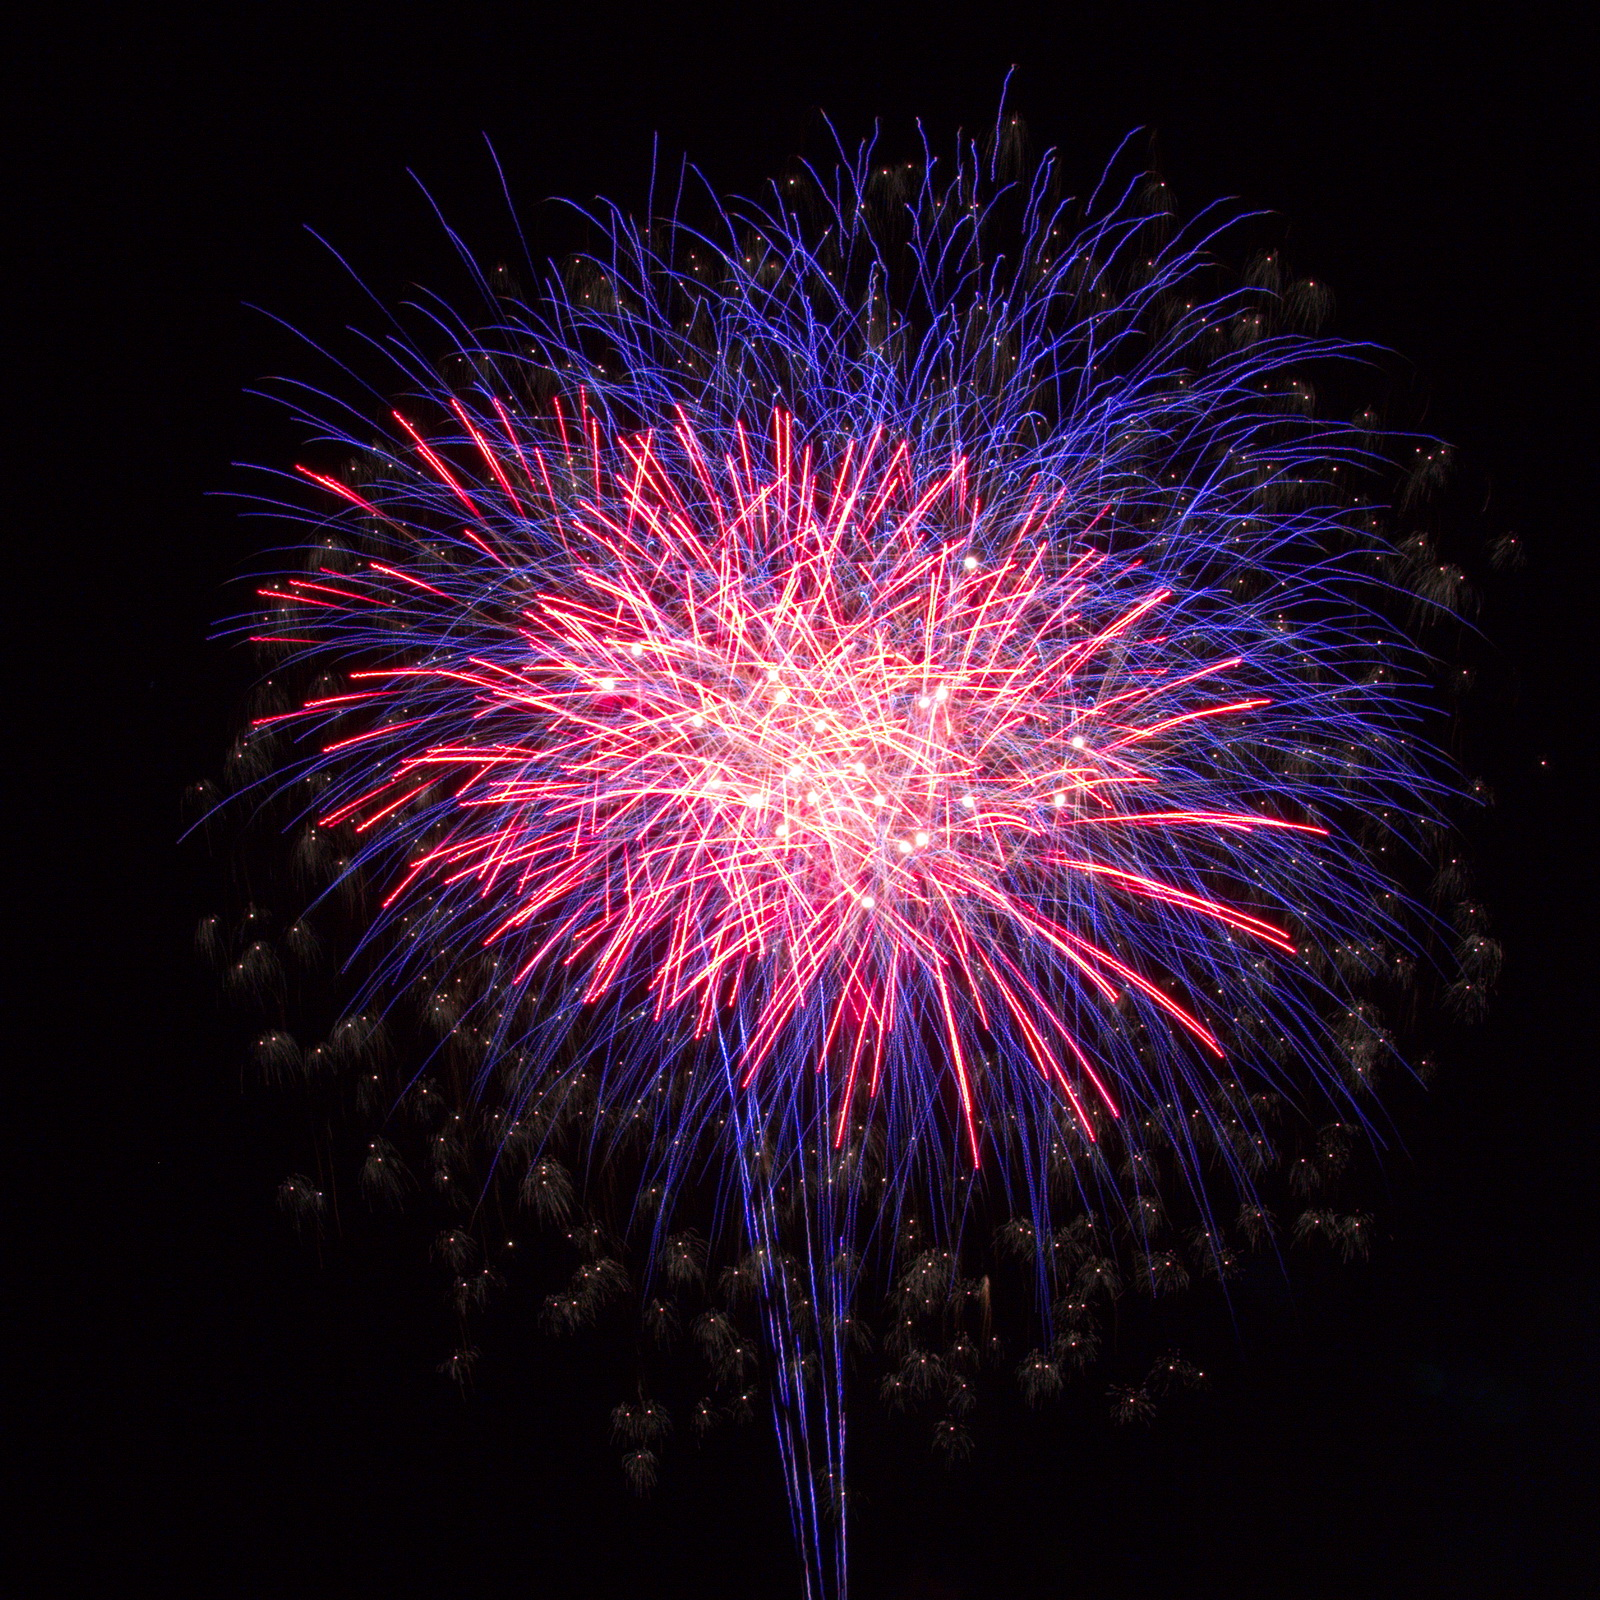 Massachusetts Fireworks: Patriotic, red, white and blue